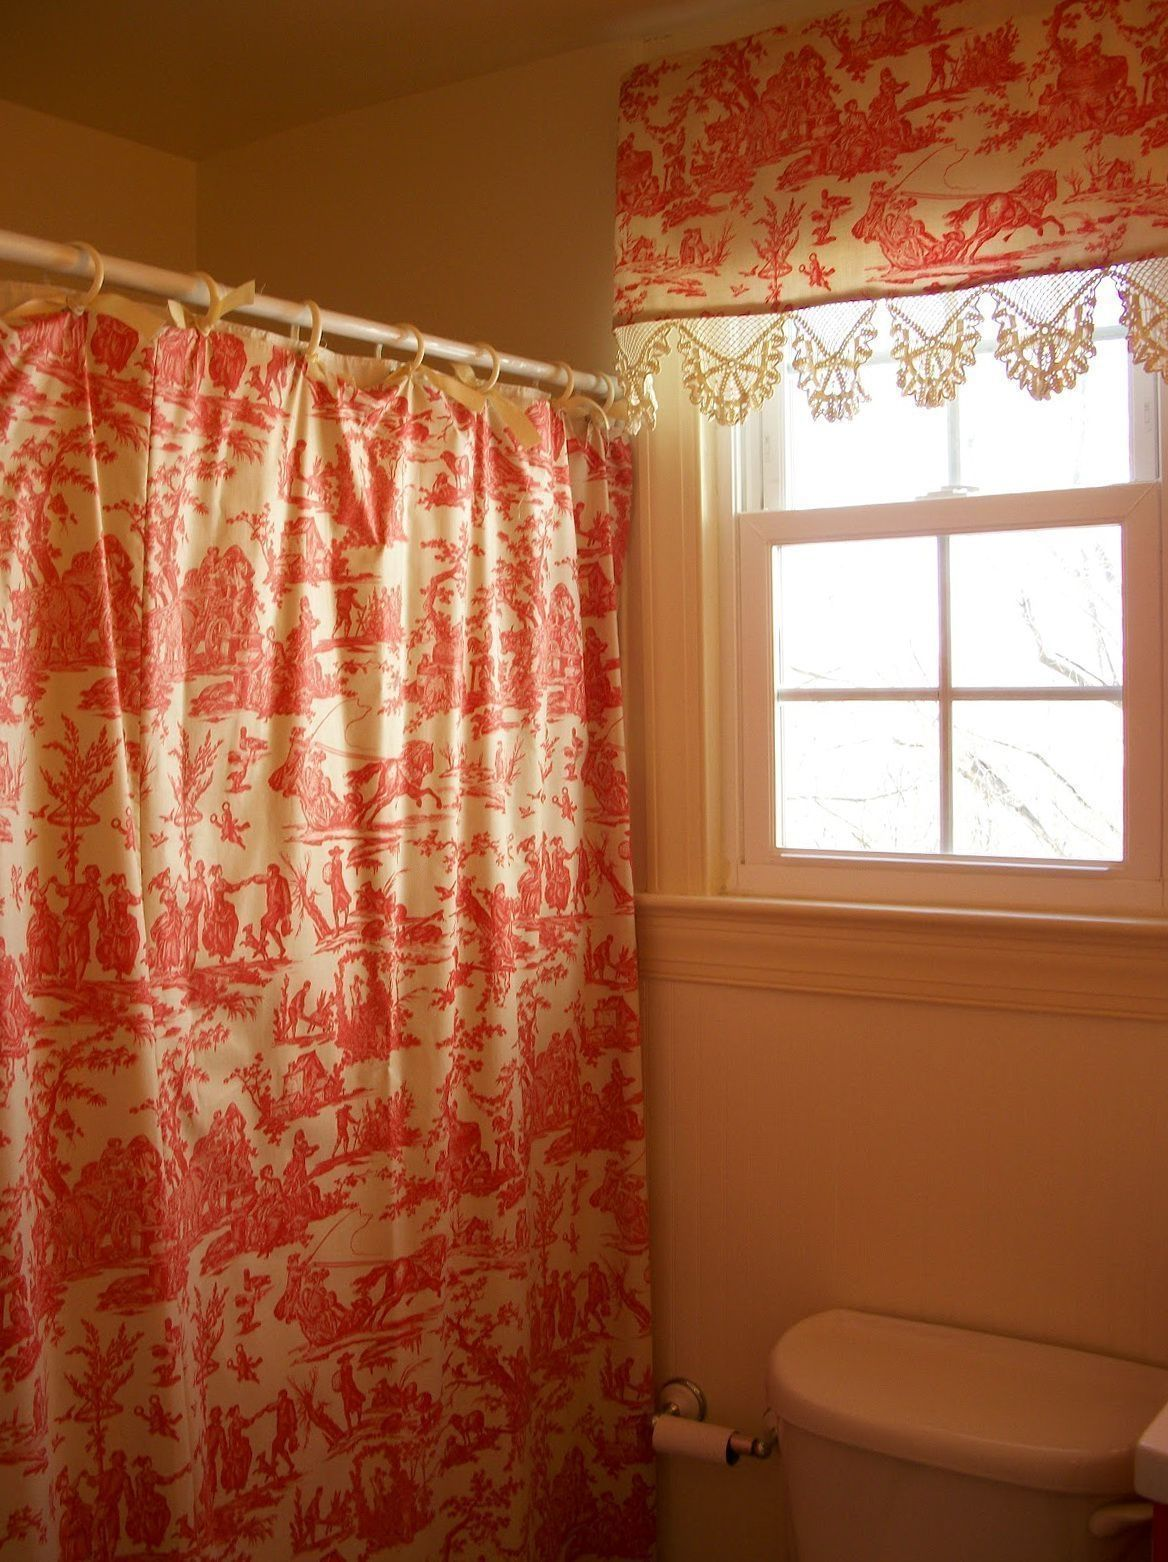 Matching Window Valance And Shower Curtain